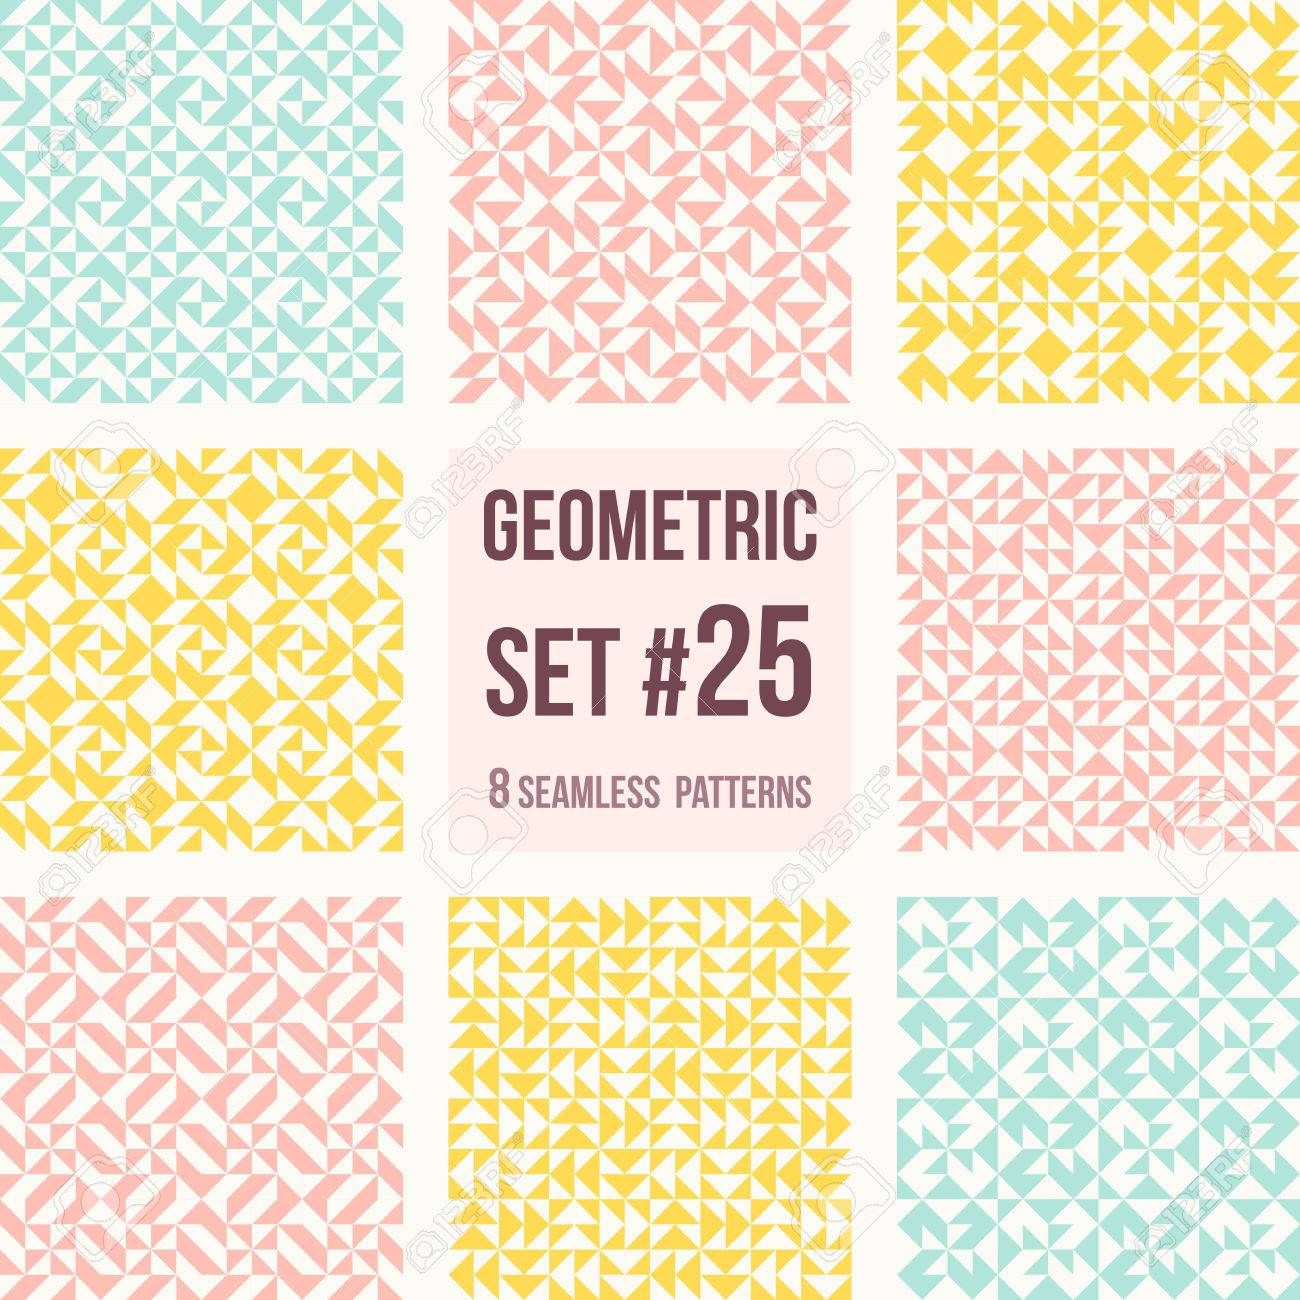 Easy Geometric Patterns Amazing Inspiration Ideas